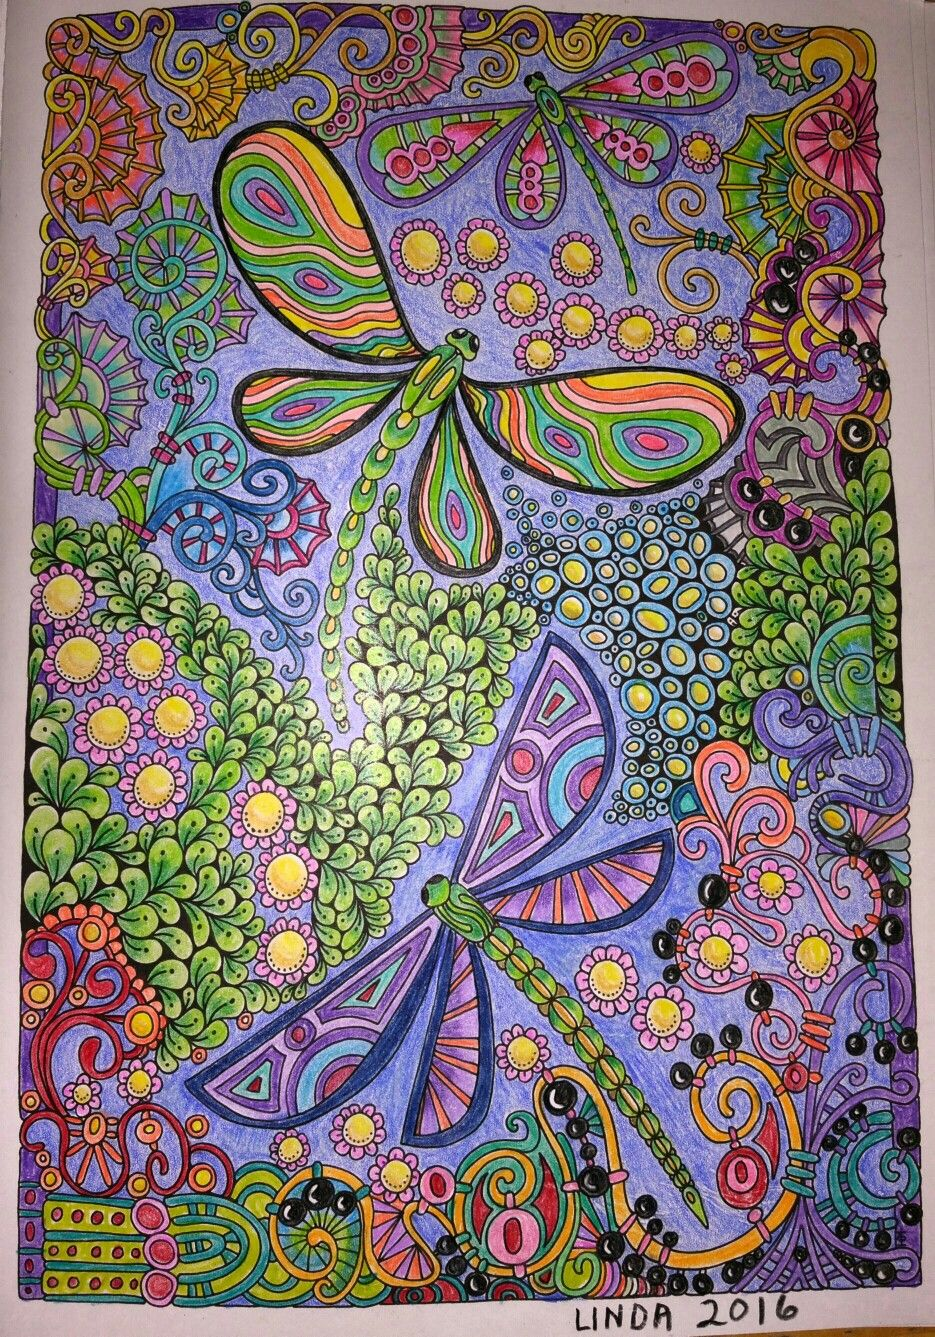 CREATIVE HAVEN, Entangled Dragonflies colored by Linda Koenig